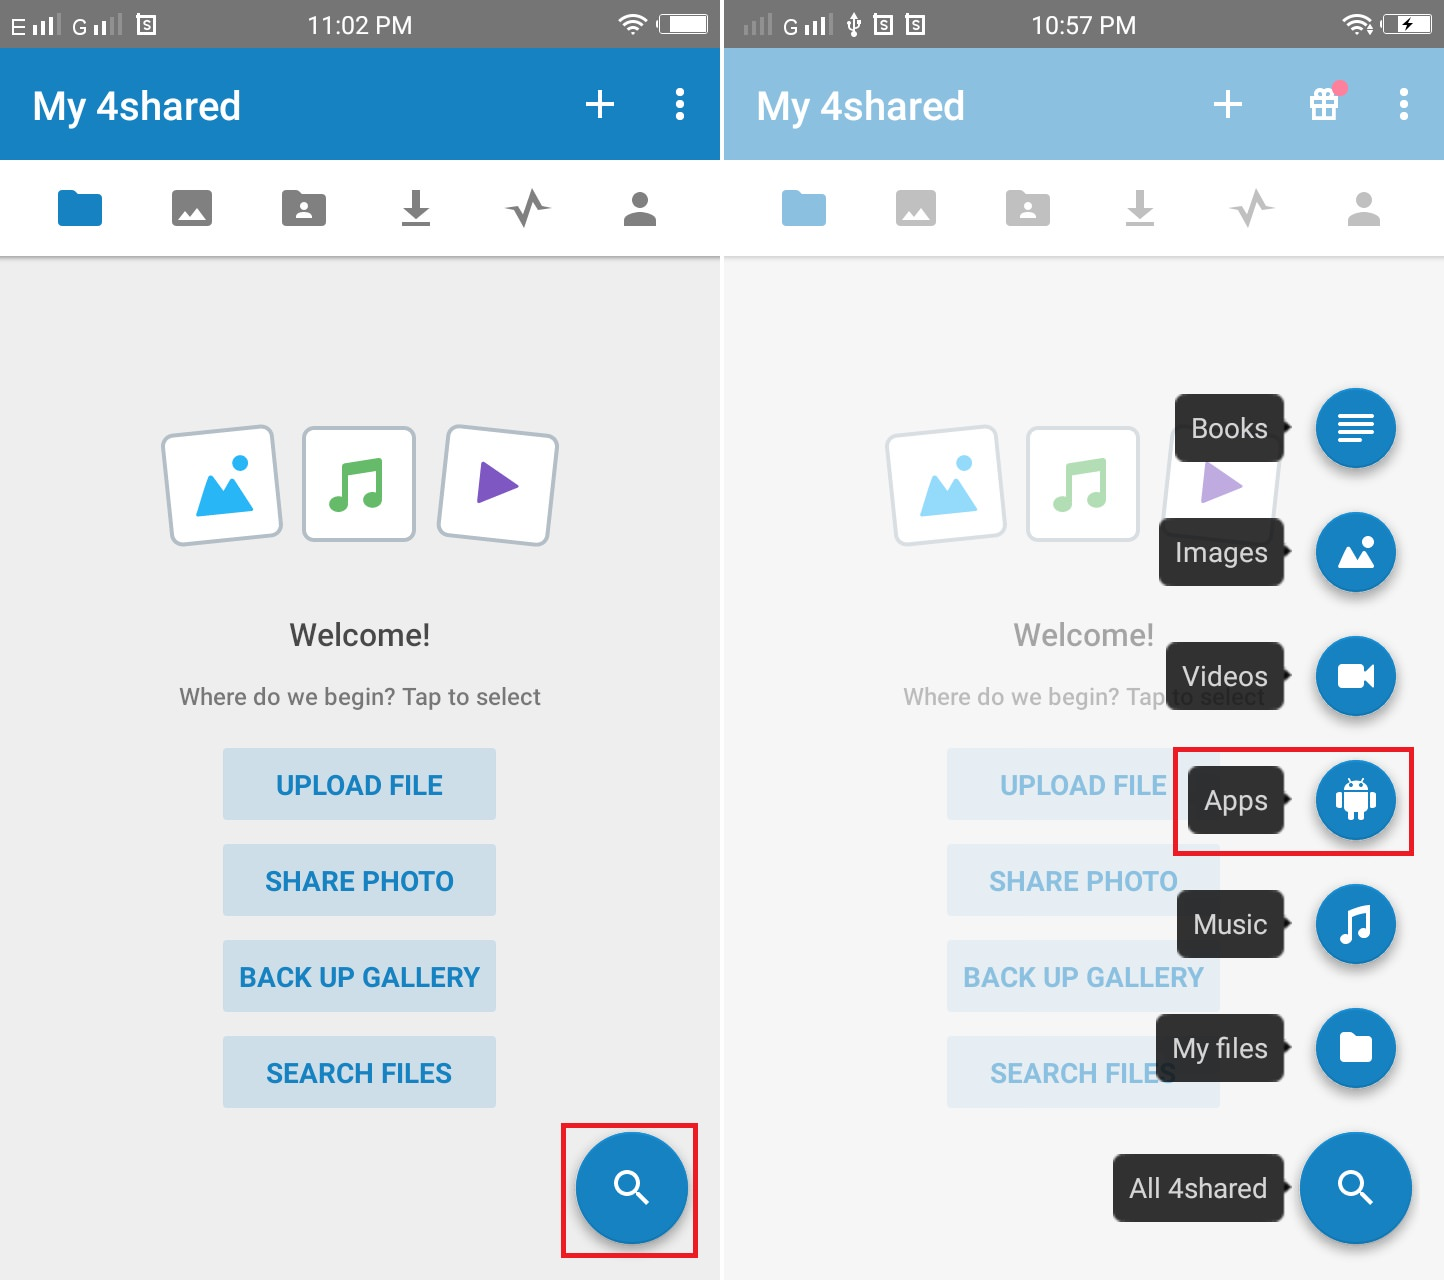 Download Paid Apps for free using 4shared App screenshot 2